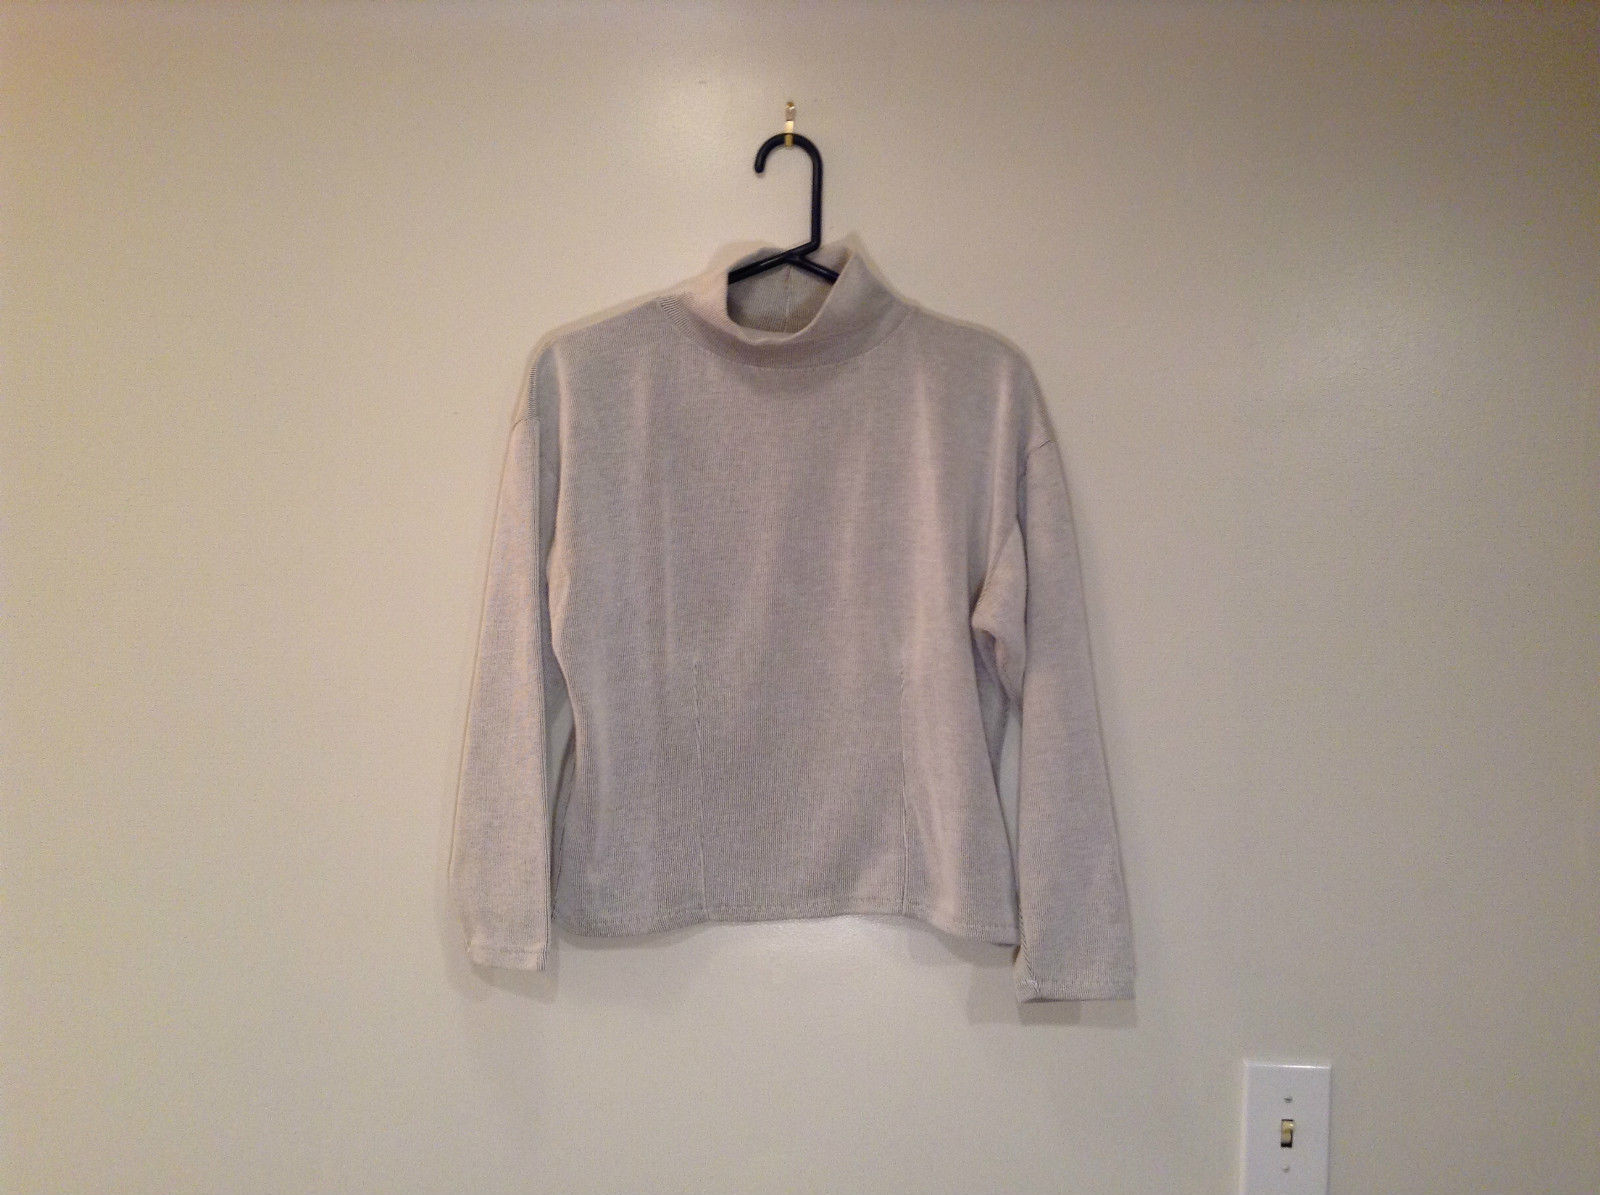 Express Tricot Light Gray Long Sleeve Turtleneck Top Size Medium